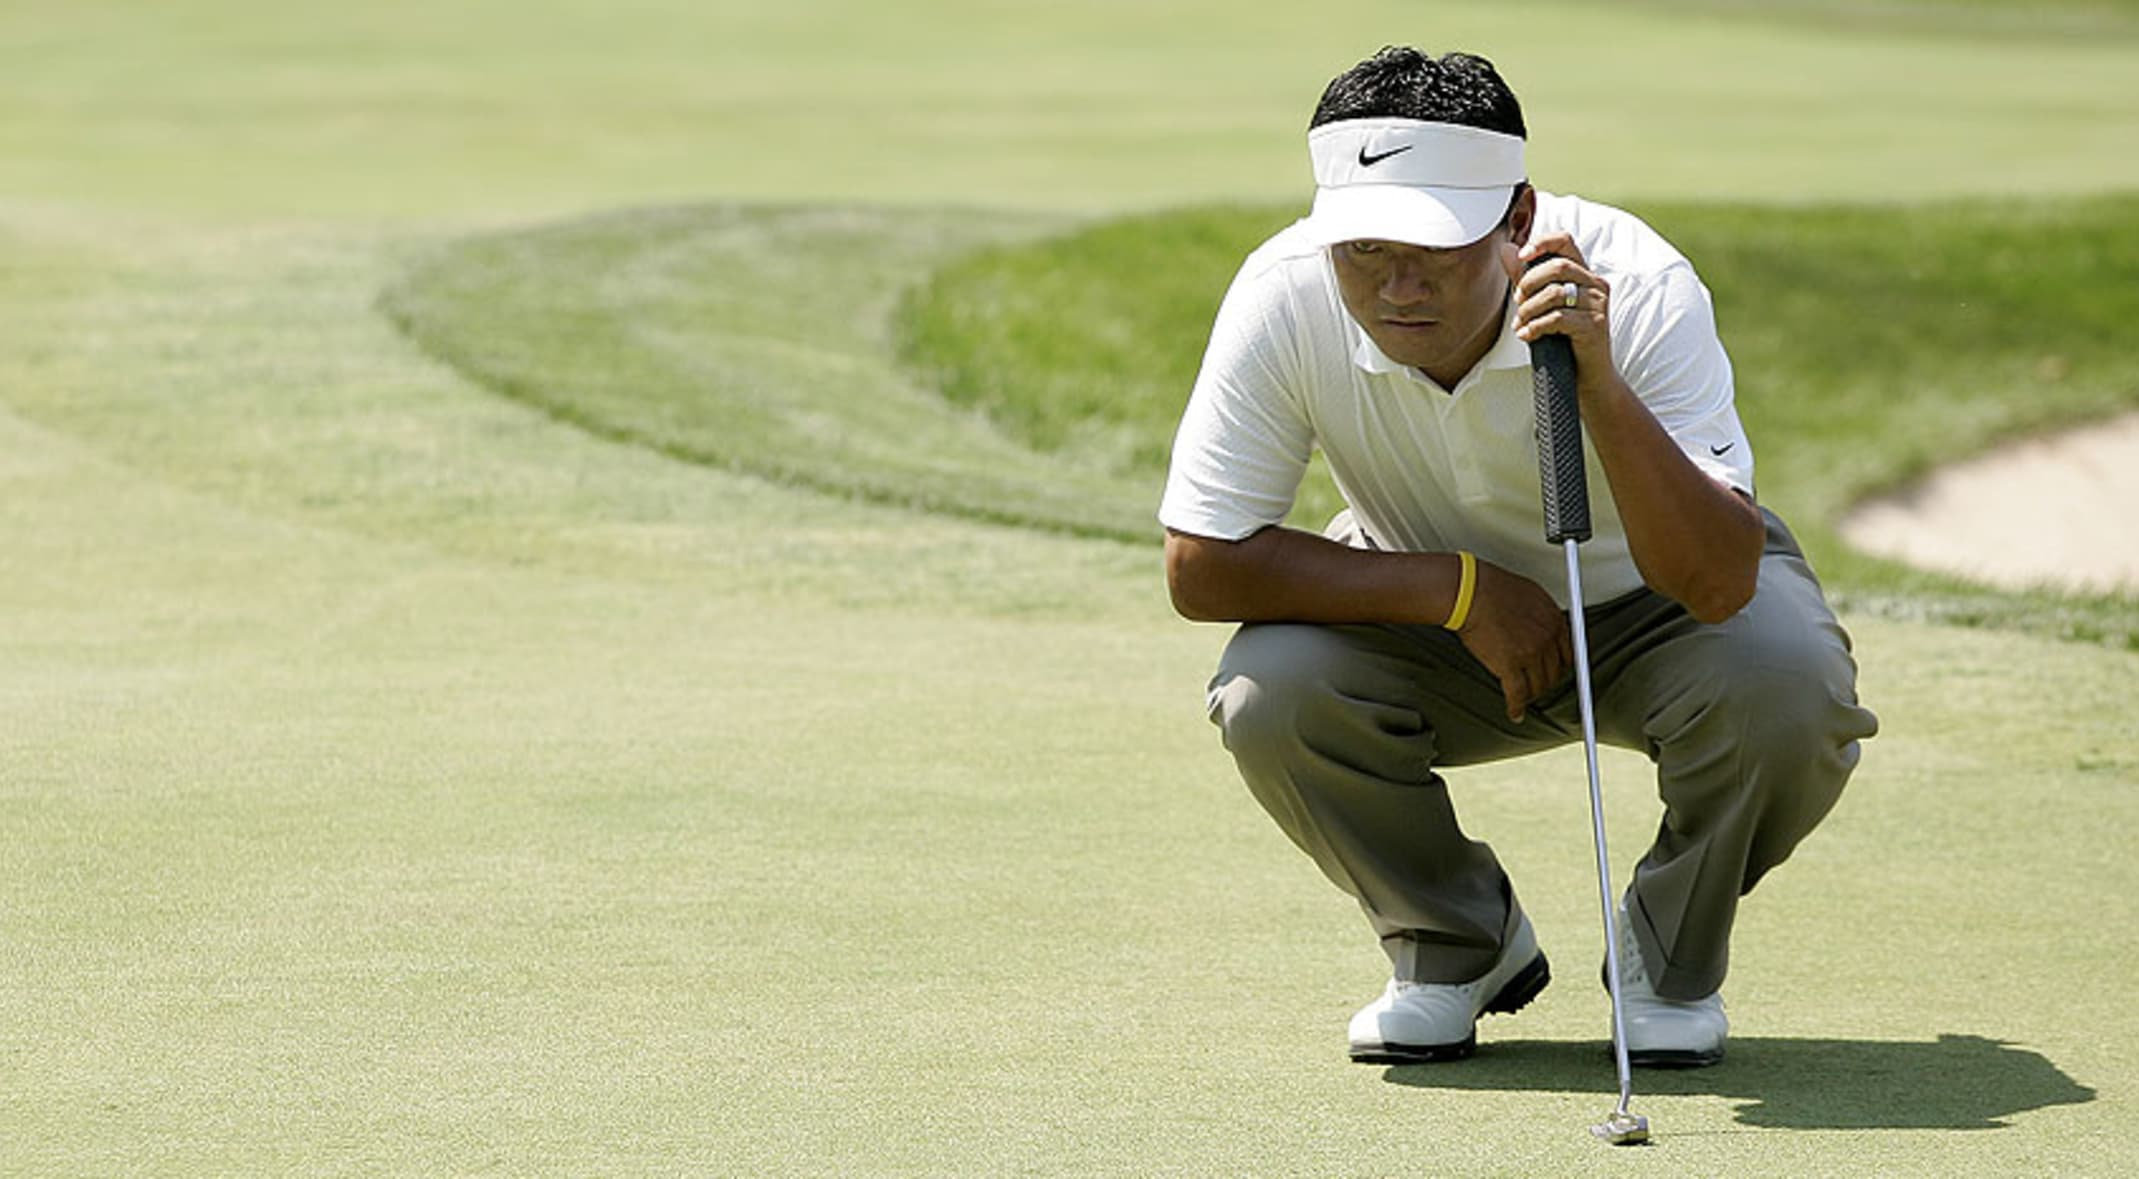 Choi S Fat Putter Grip Started Major Trend On Tour